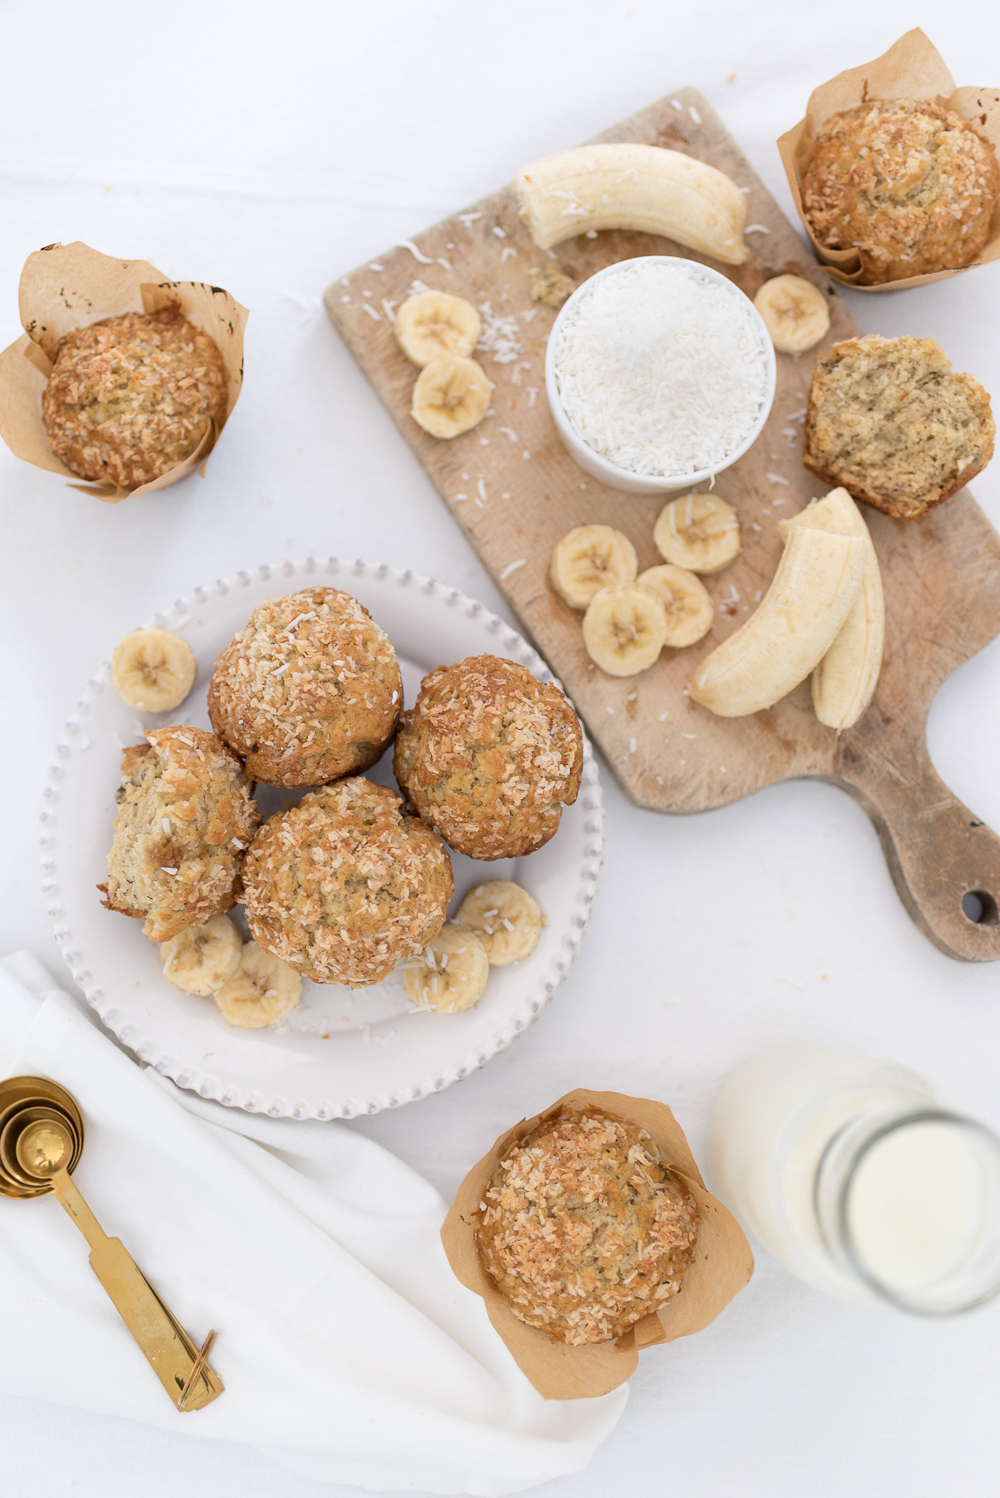 This simple banana coconut muffin recipe is perfect for breakfast on busy mornings or makes a delicious afternoon snack.